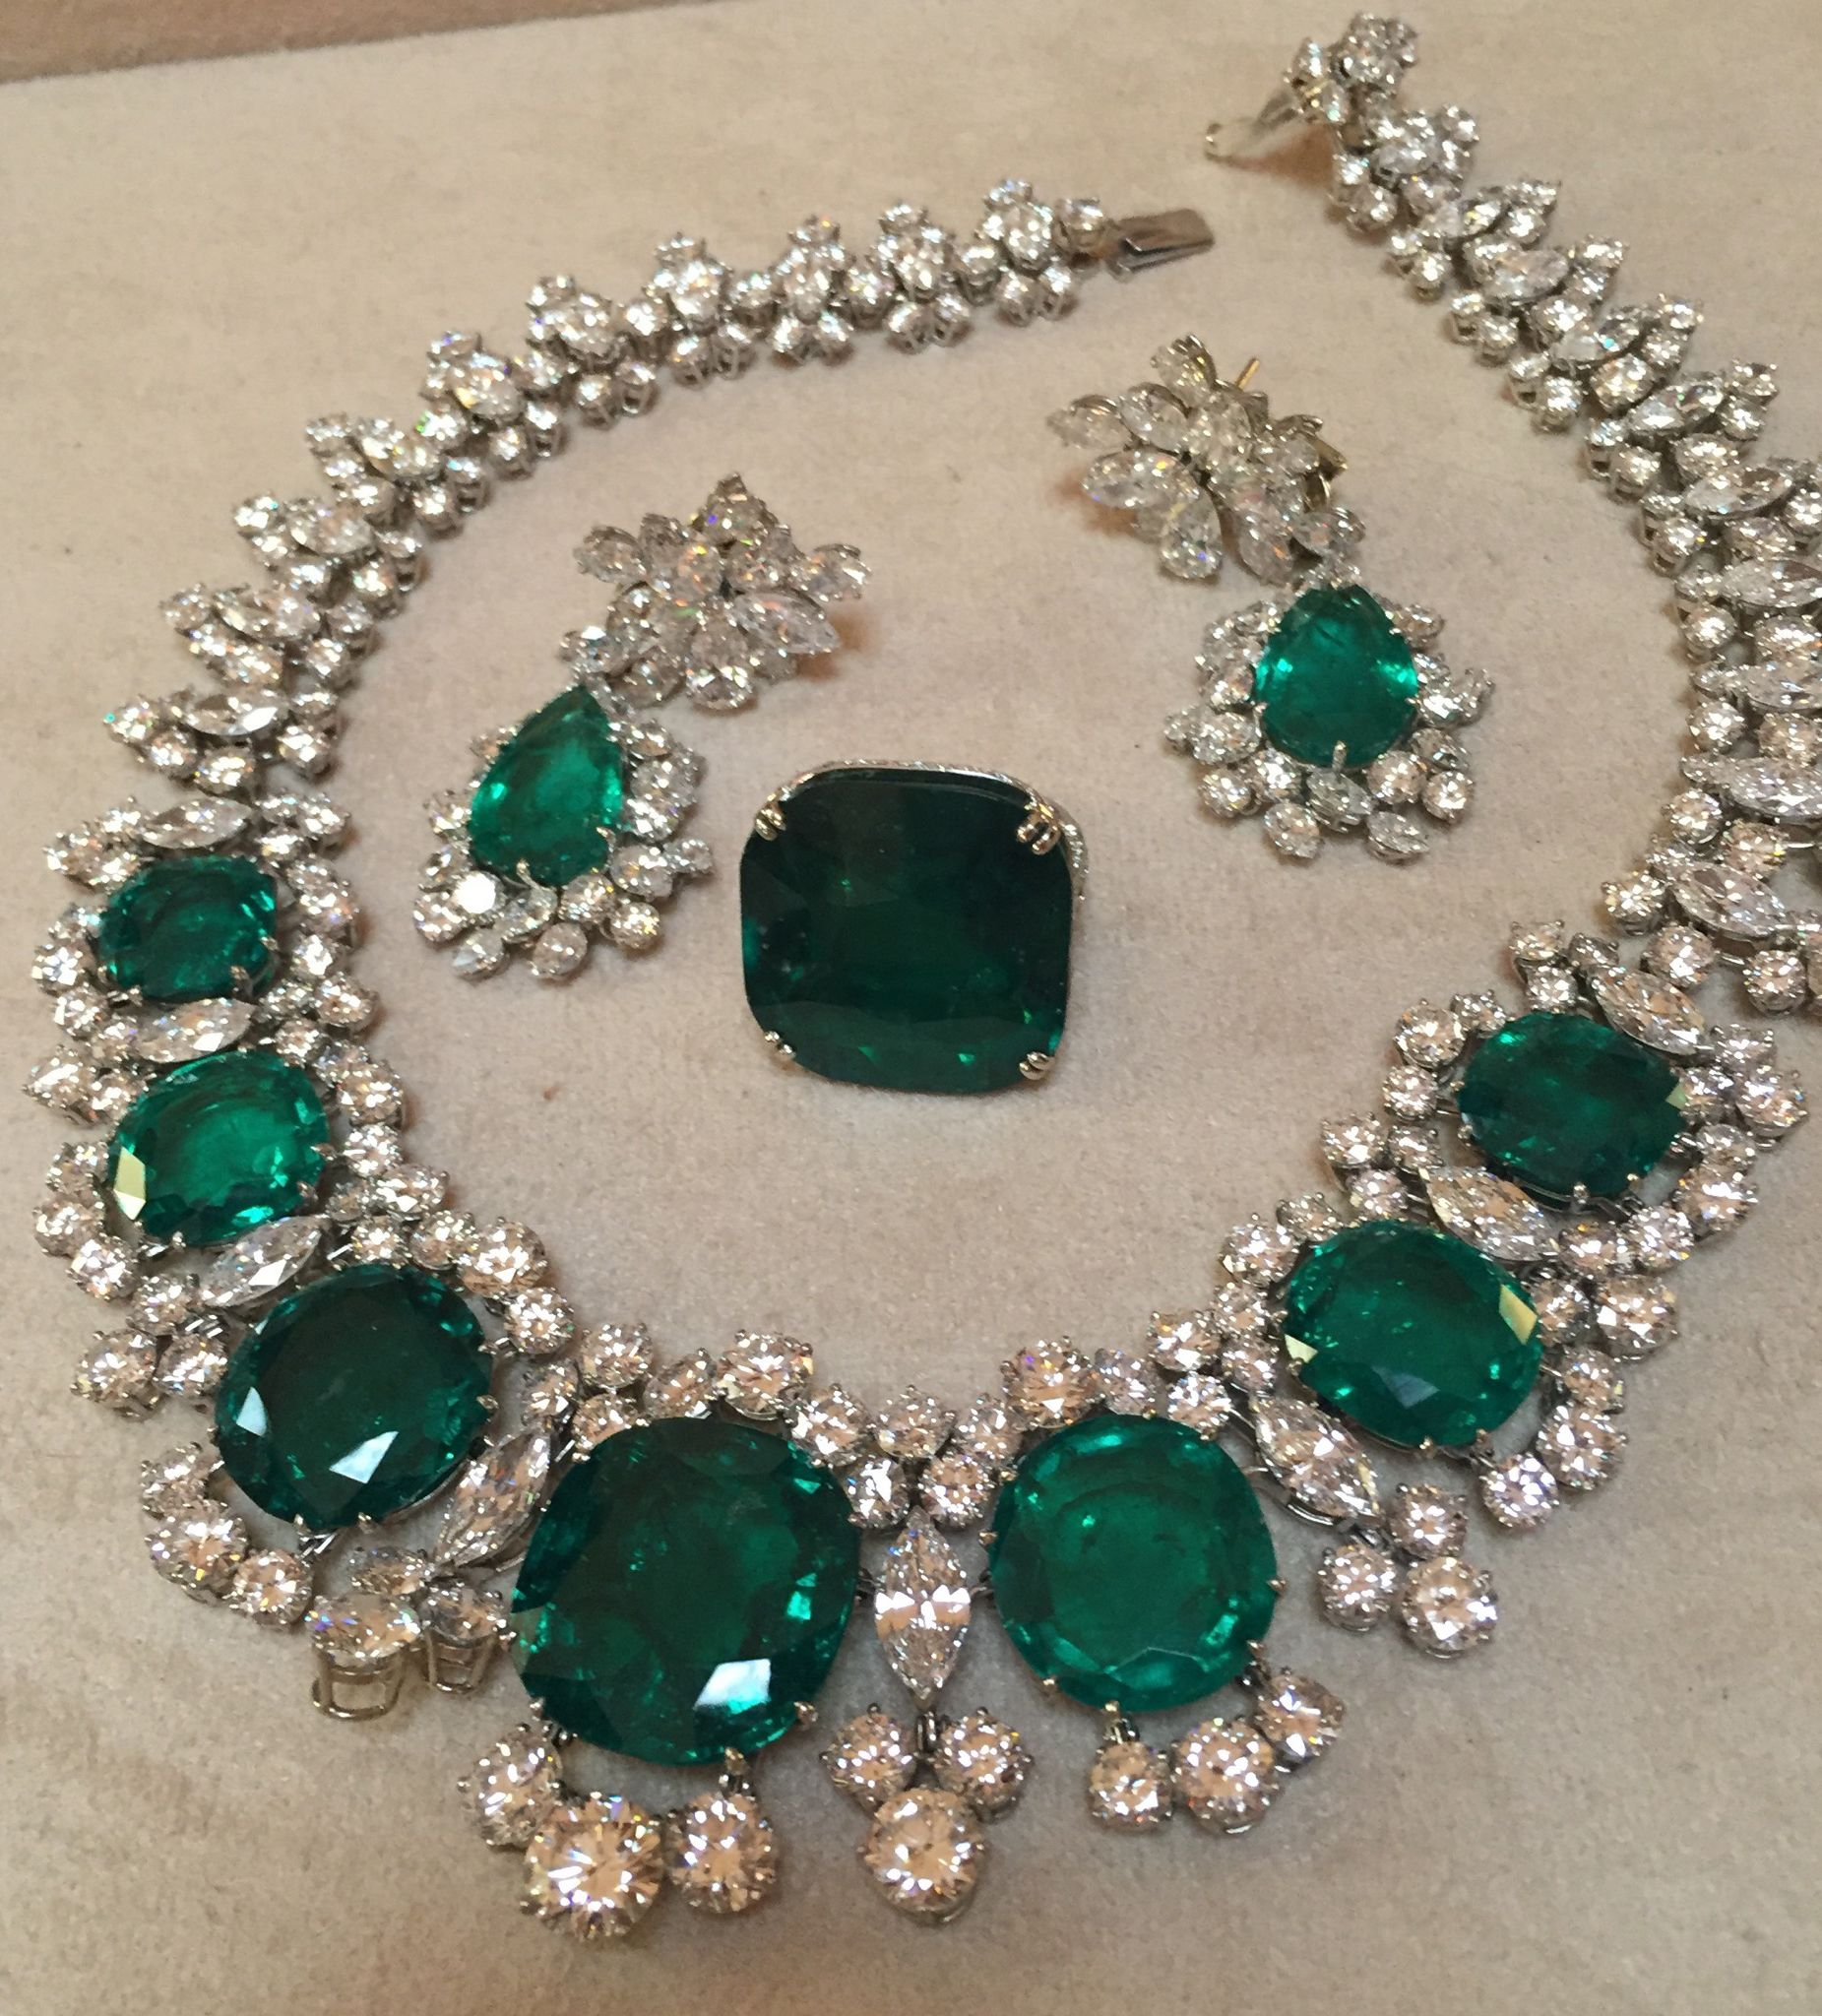 Perhaps one of the most famous jewellery suits of all time: the Bulgari Seven Wonders emerald necklace, with the matching diamond and emerald earrings and a Bvlgari emerald ring thrown in for good measure. Worn by Elizabeth Taylor, Gina Lollobrigida and Monica Vitti to name just a few celebrities. Discover the fashion history of the most iconic and classic of jewellery brands to date: http://www.thejewelleryeditor.com/jewellery/bulgari-history-of-style-celebrities-iconic-design/ #jewelry